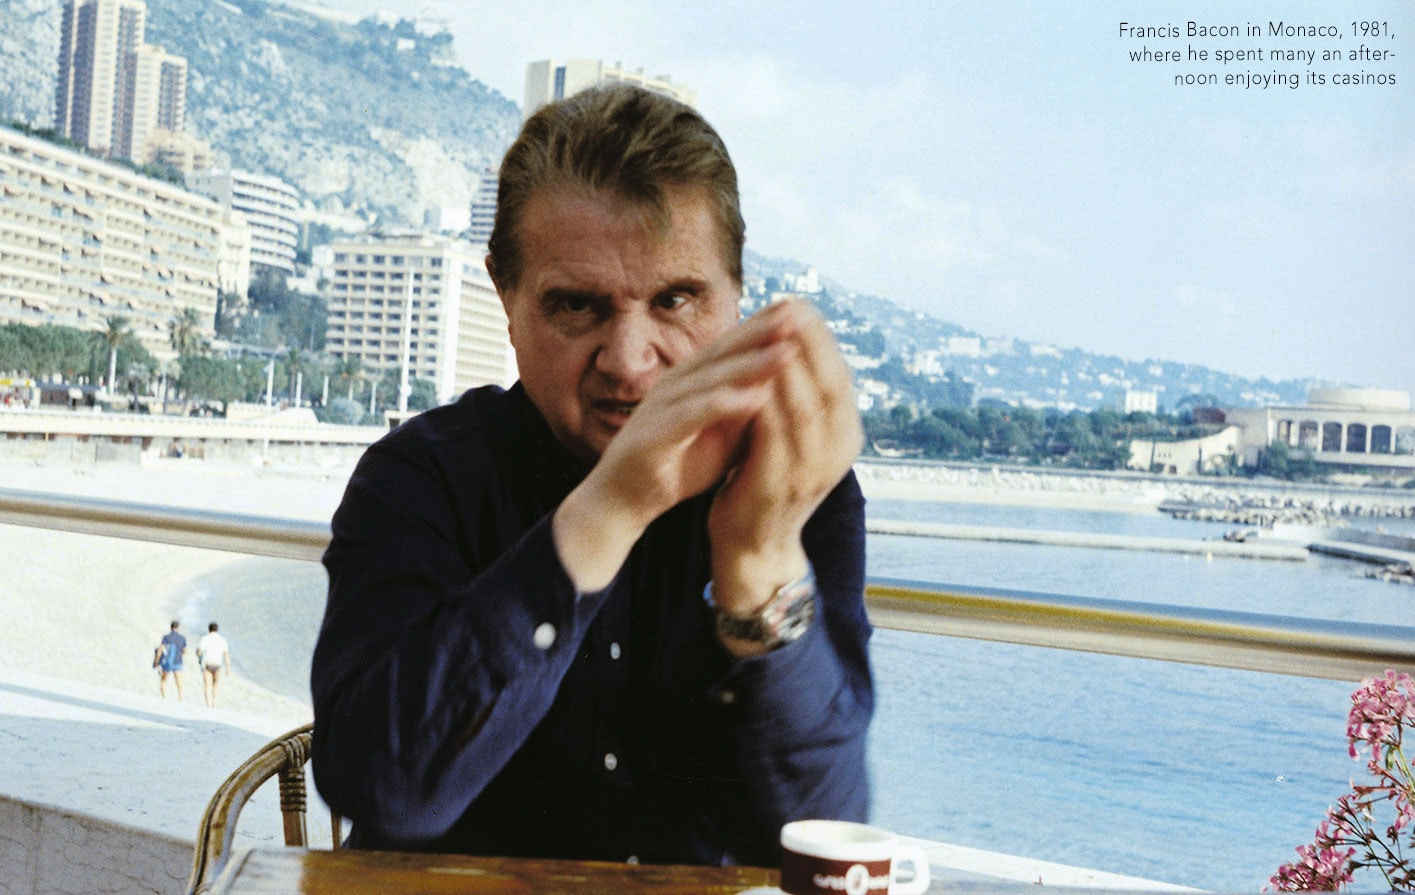 Francis Bacon in Monaco, 1981, where he spent many an afternoon enjoying its casinos